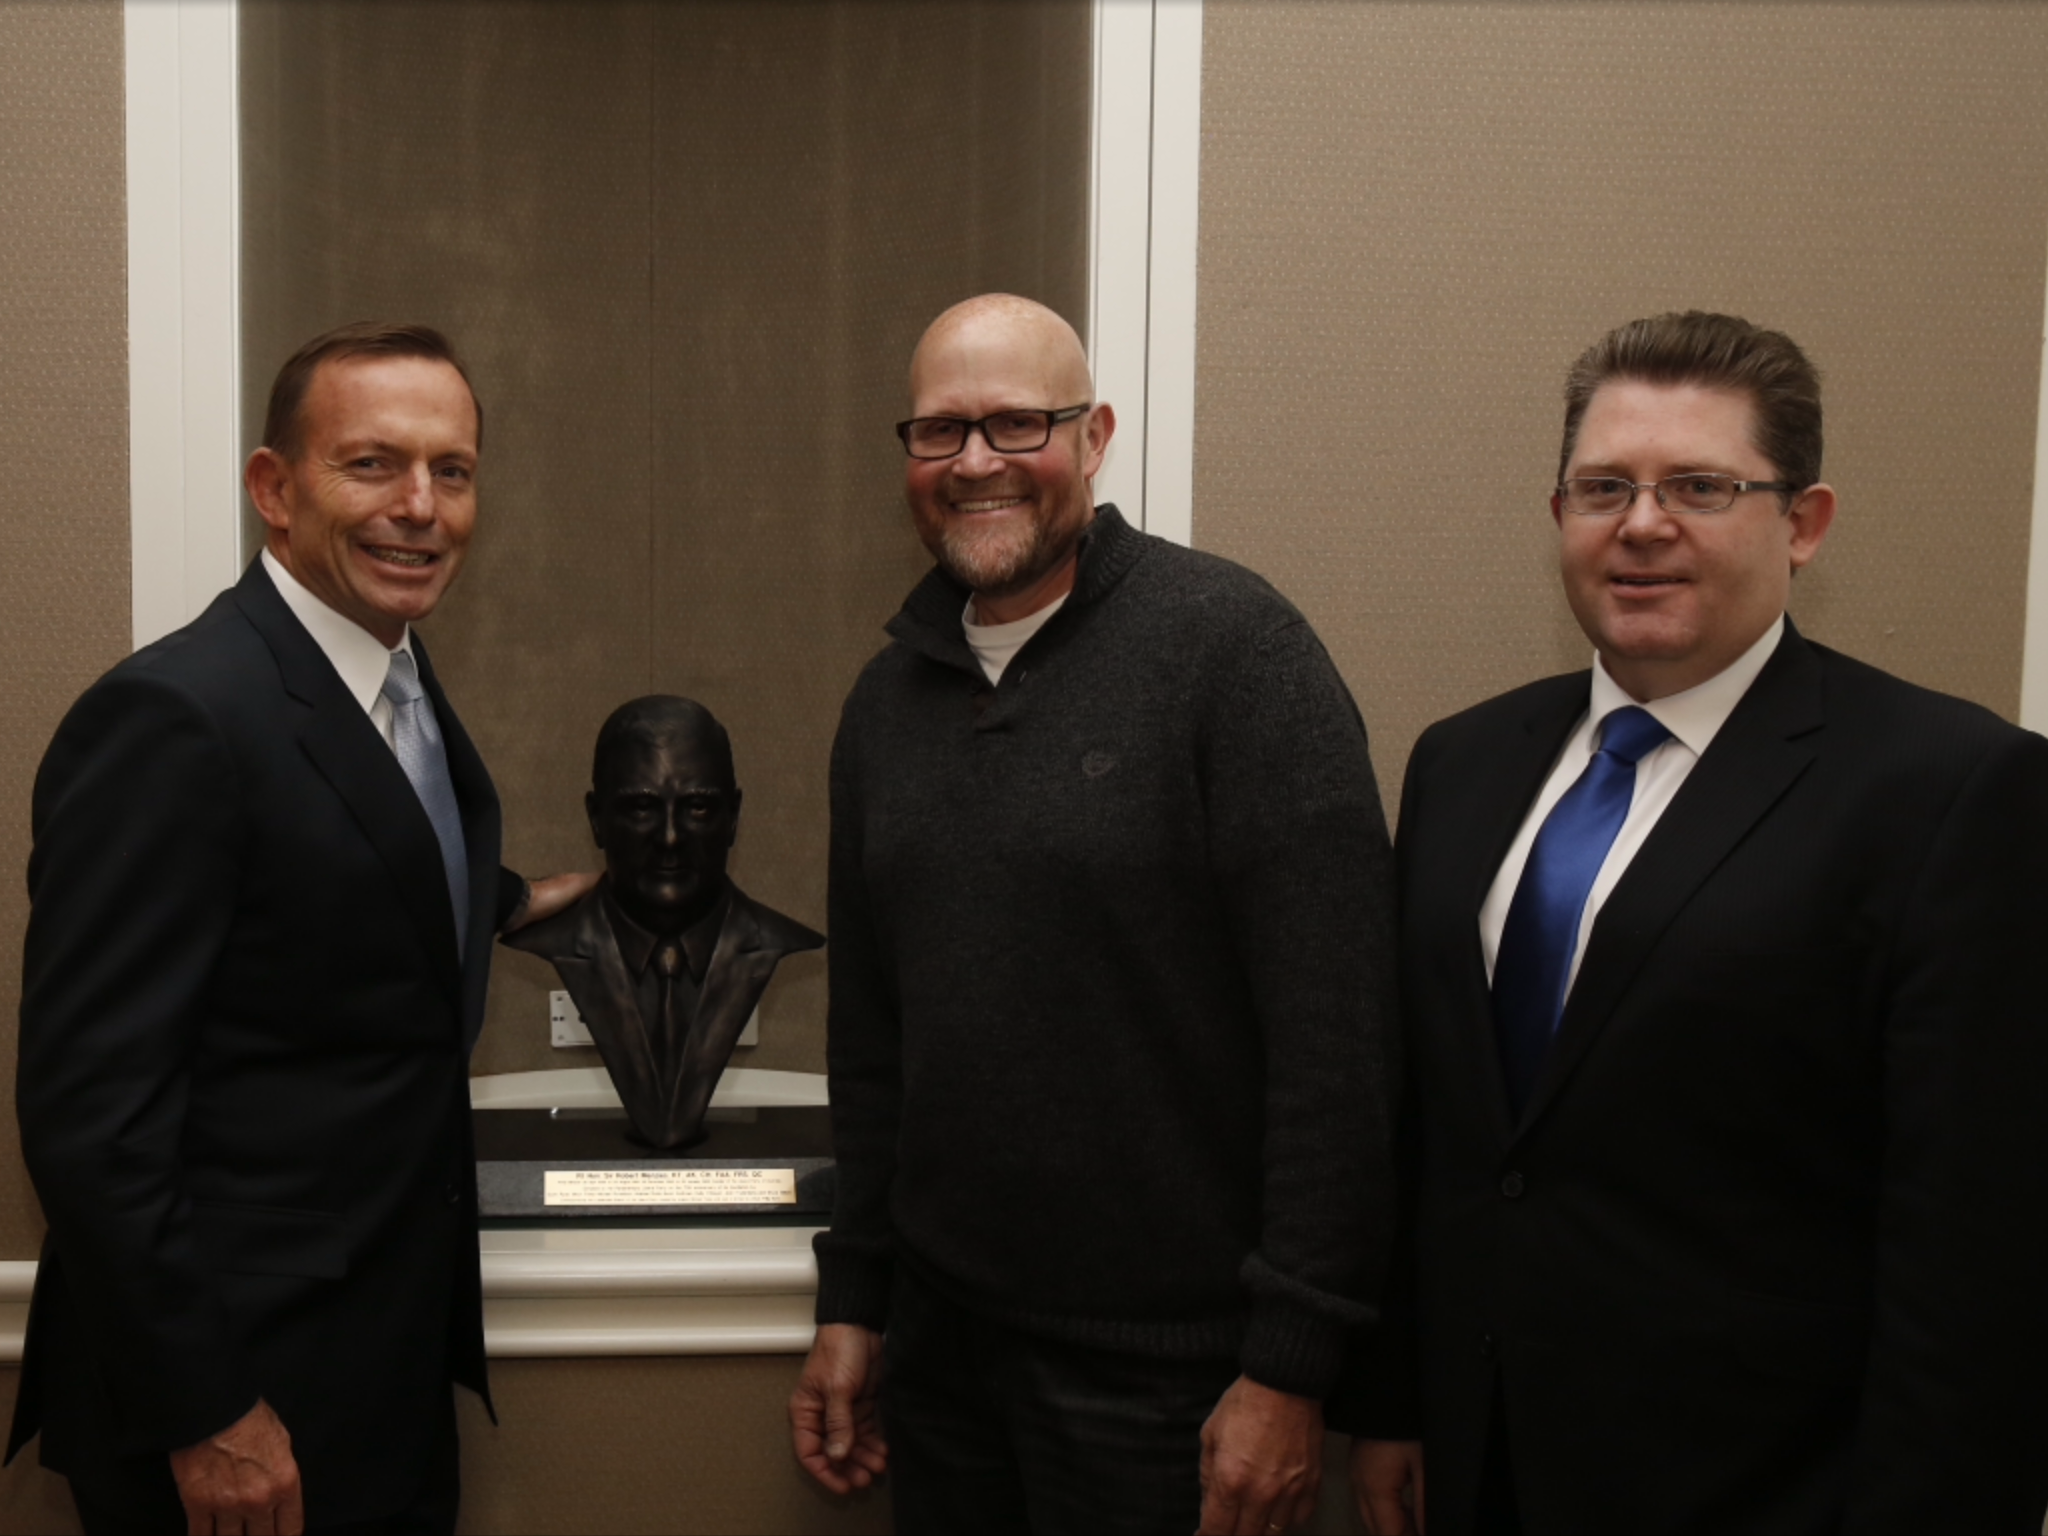 Richard with Prime Minister & Bronze